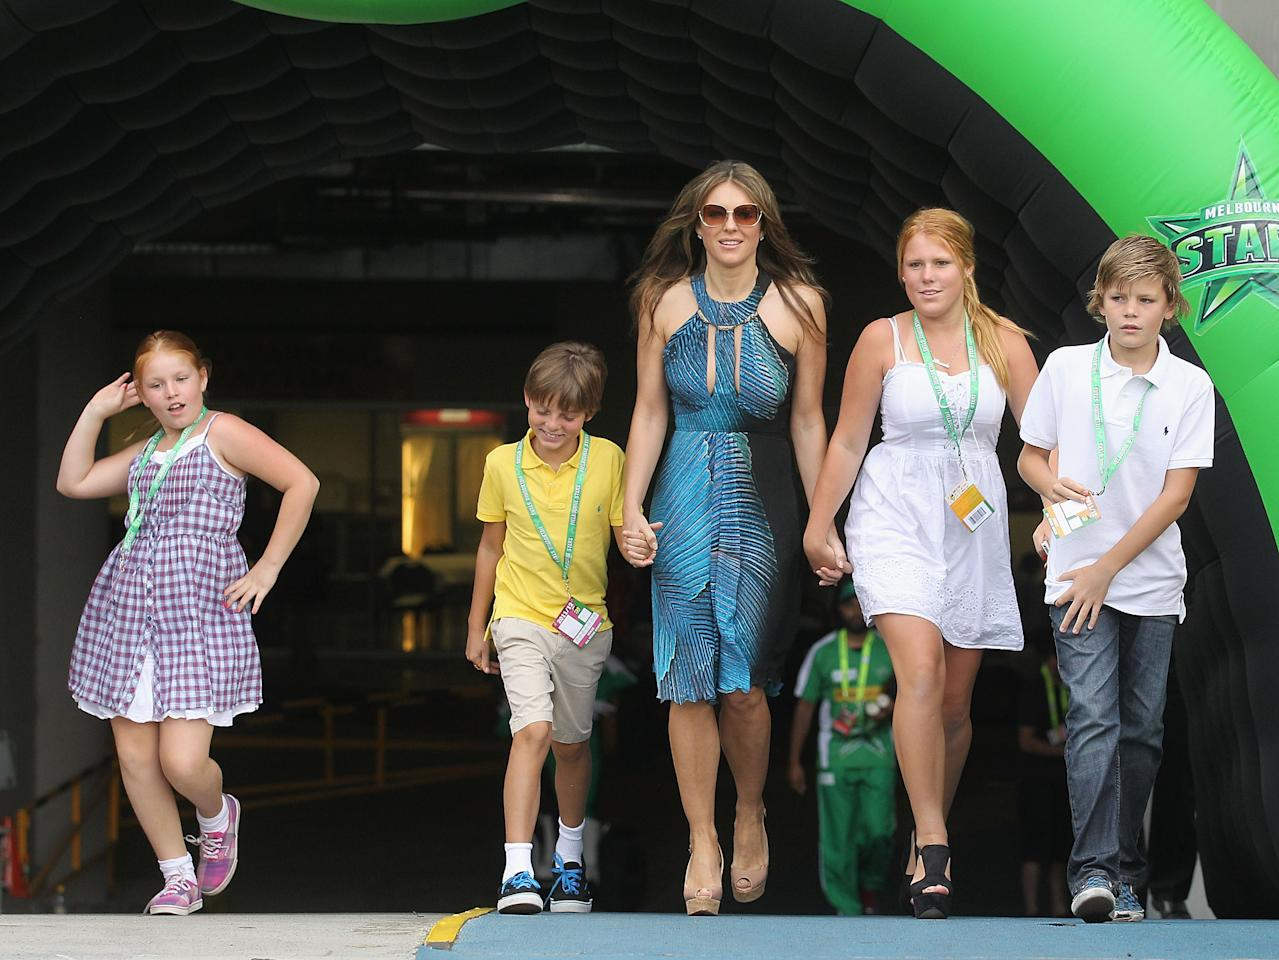 MELBOURNE, AUSTRALIA - DECEMBER 17:  Liz Hurley walks out to toss the coin with her son Damian (yellow) and Shane Warne's children Brooke, Summer (dancing) and Jackson ahead of the T20 Big Bash League match between the Melbourne Stars and the Sydney Thunder at Melbourne Cricket Ground on December 17, 2011 in Melbourne, Australia.  (Photo by Hamish Blair/Getty Images)